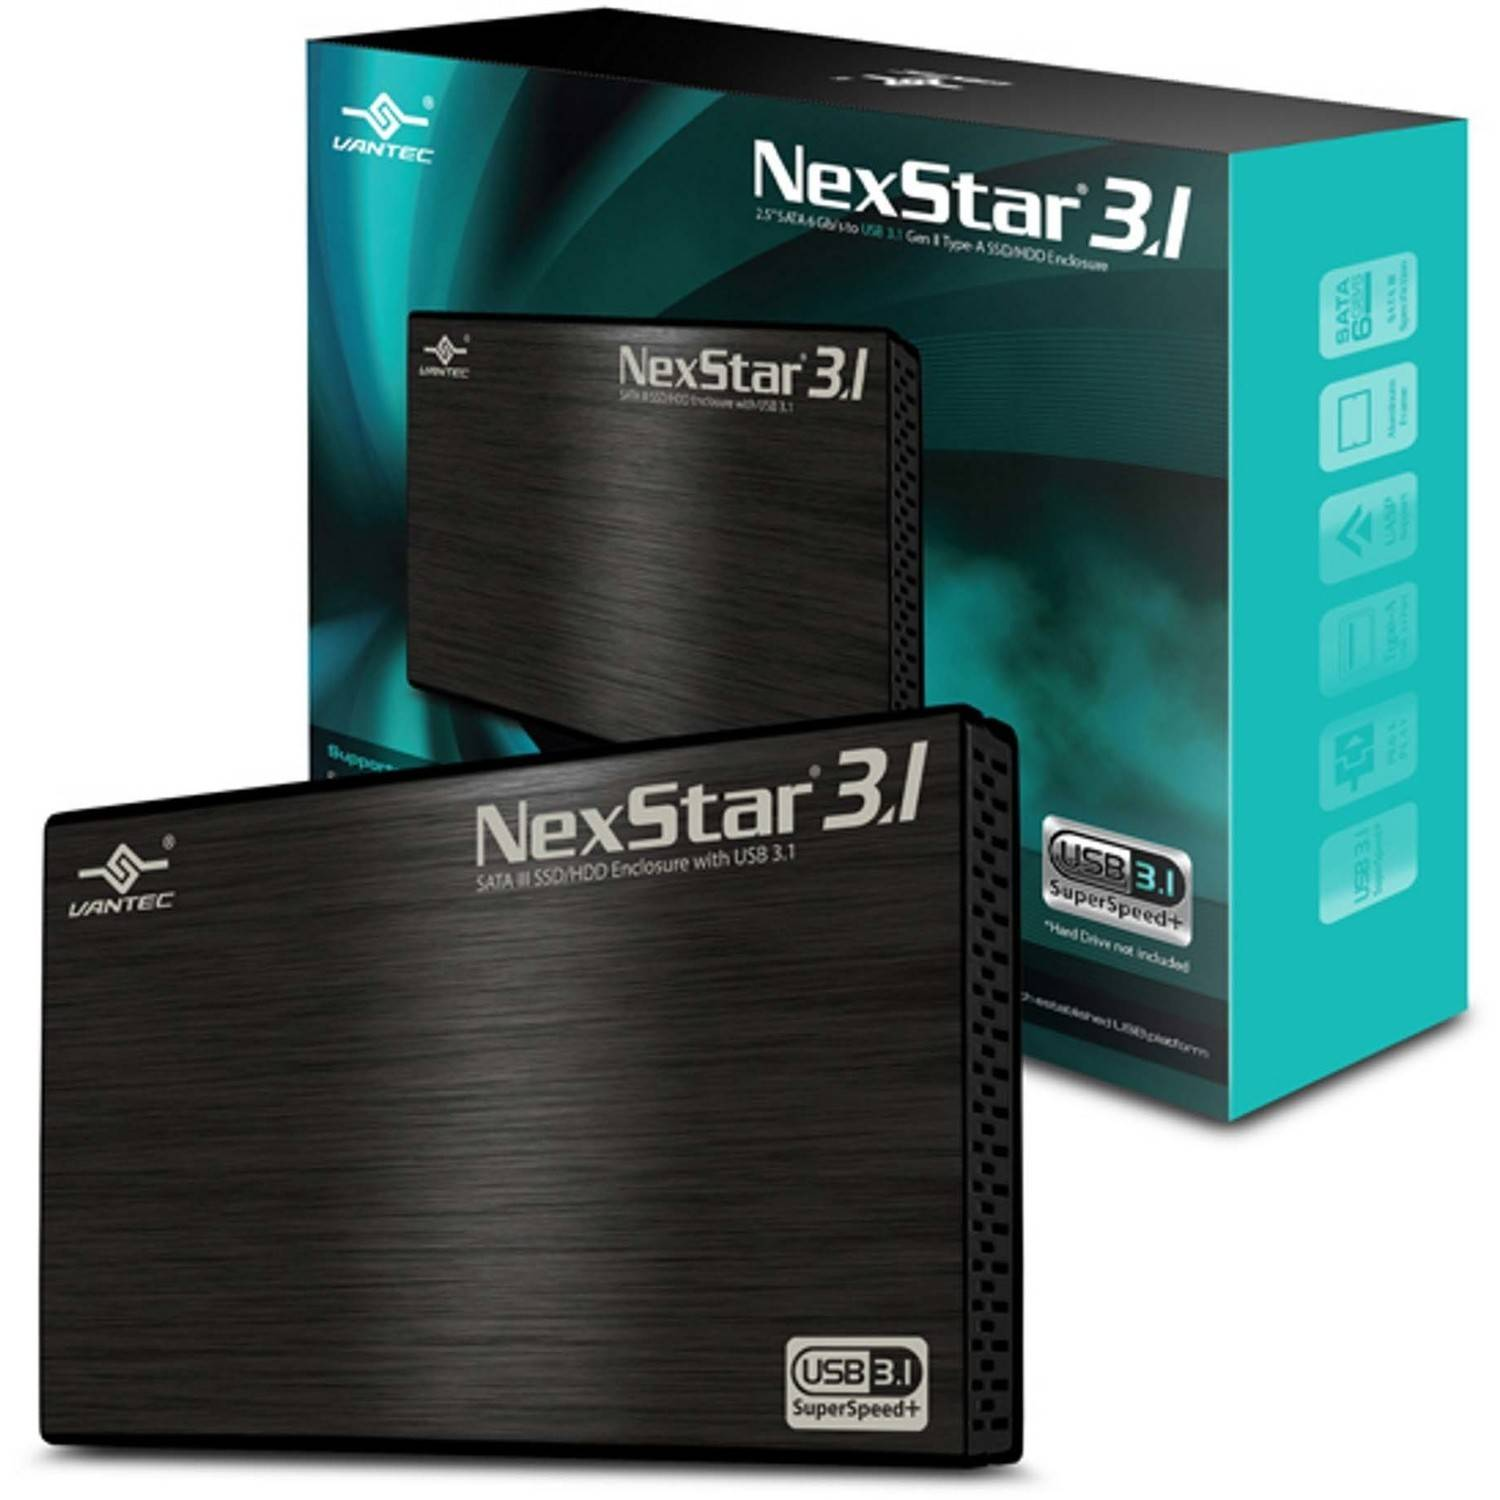 """Vantec NST-270A31-BK 2.5"""" SATA 6GBps to USB 3.1 Gen II Type-A SSD or HDD Enclosure, Black"""